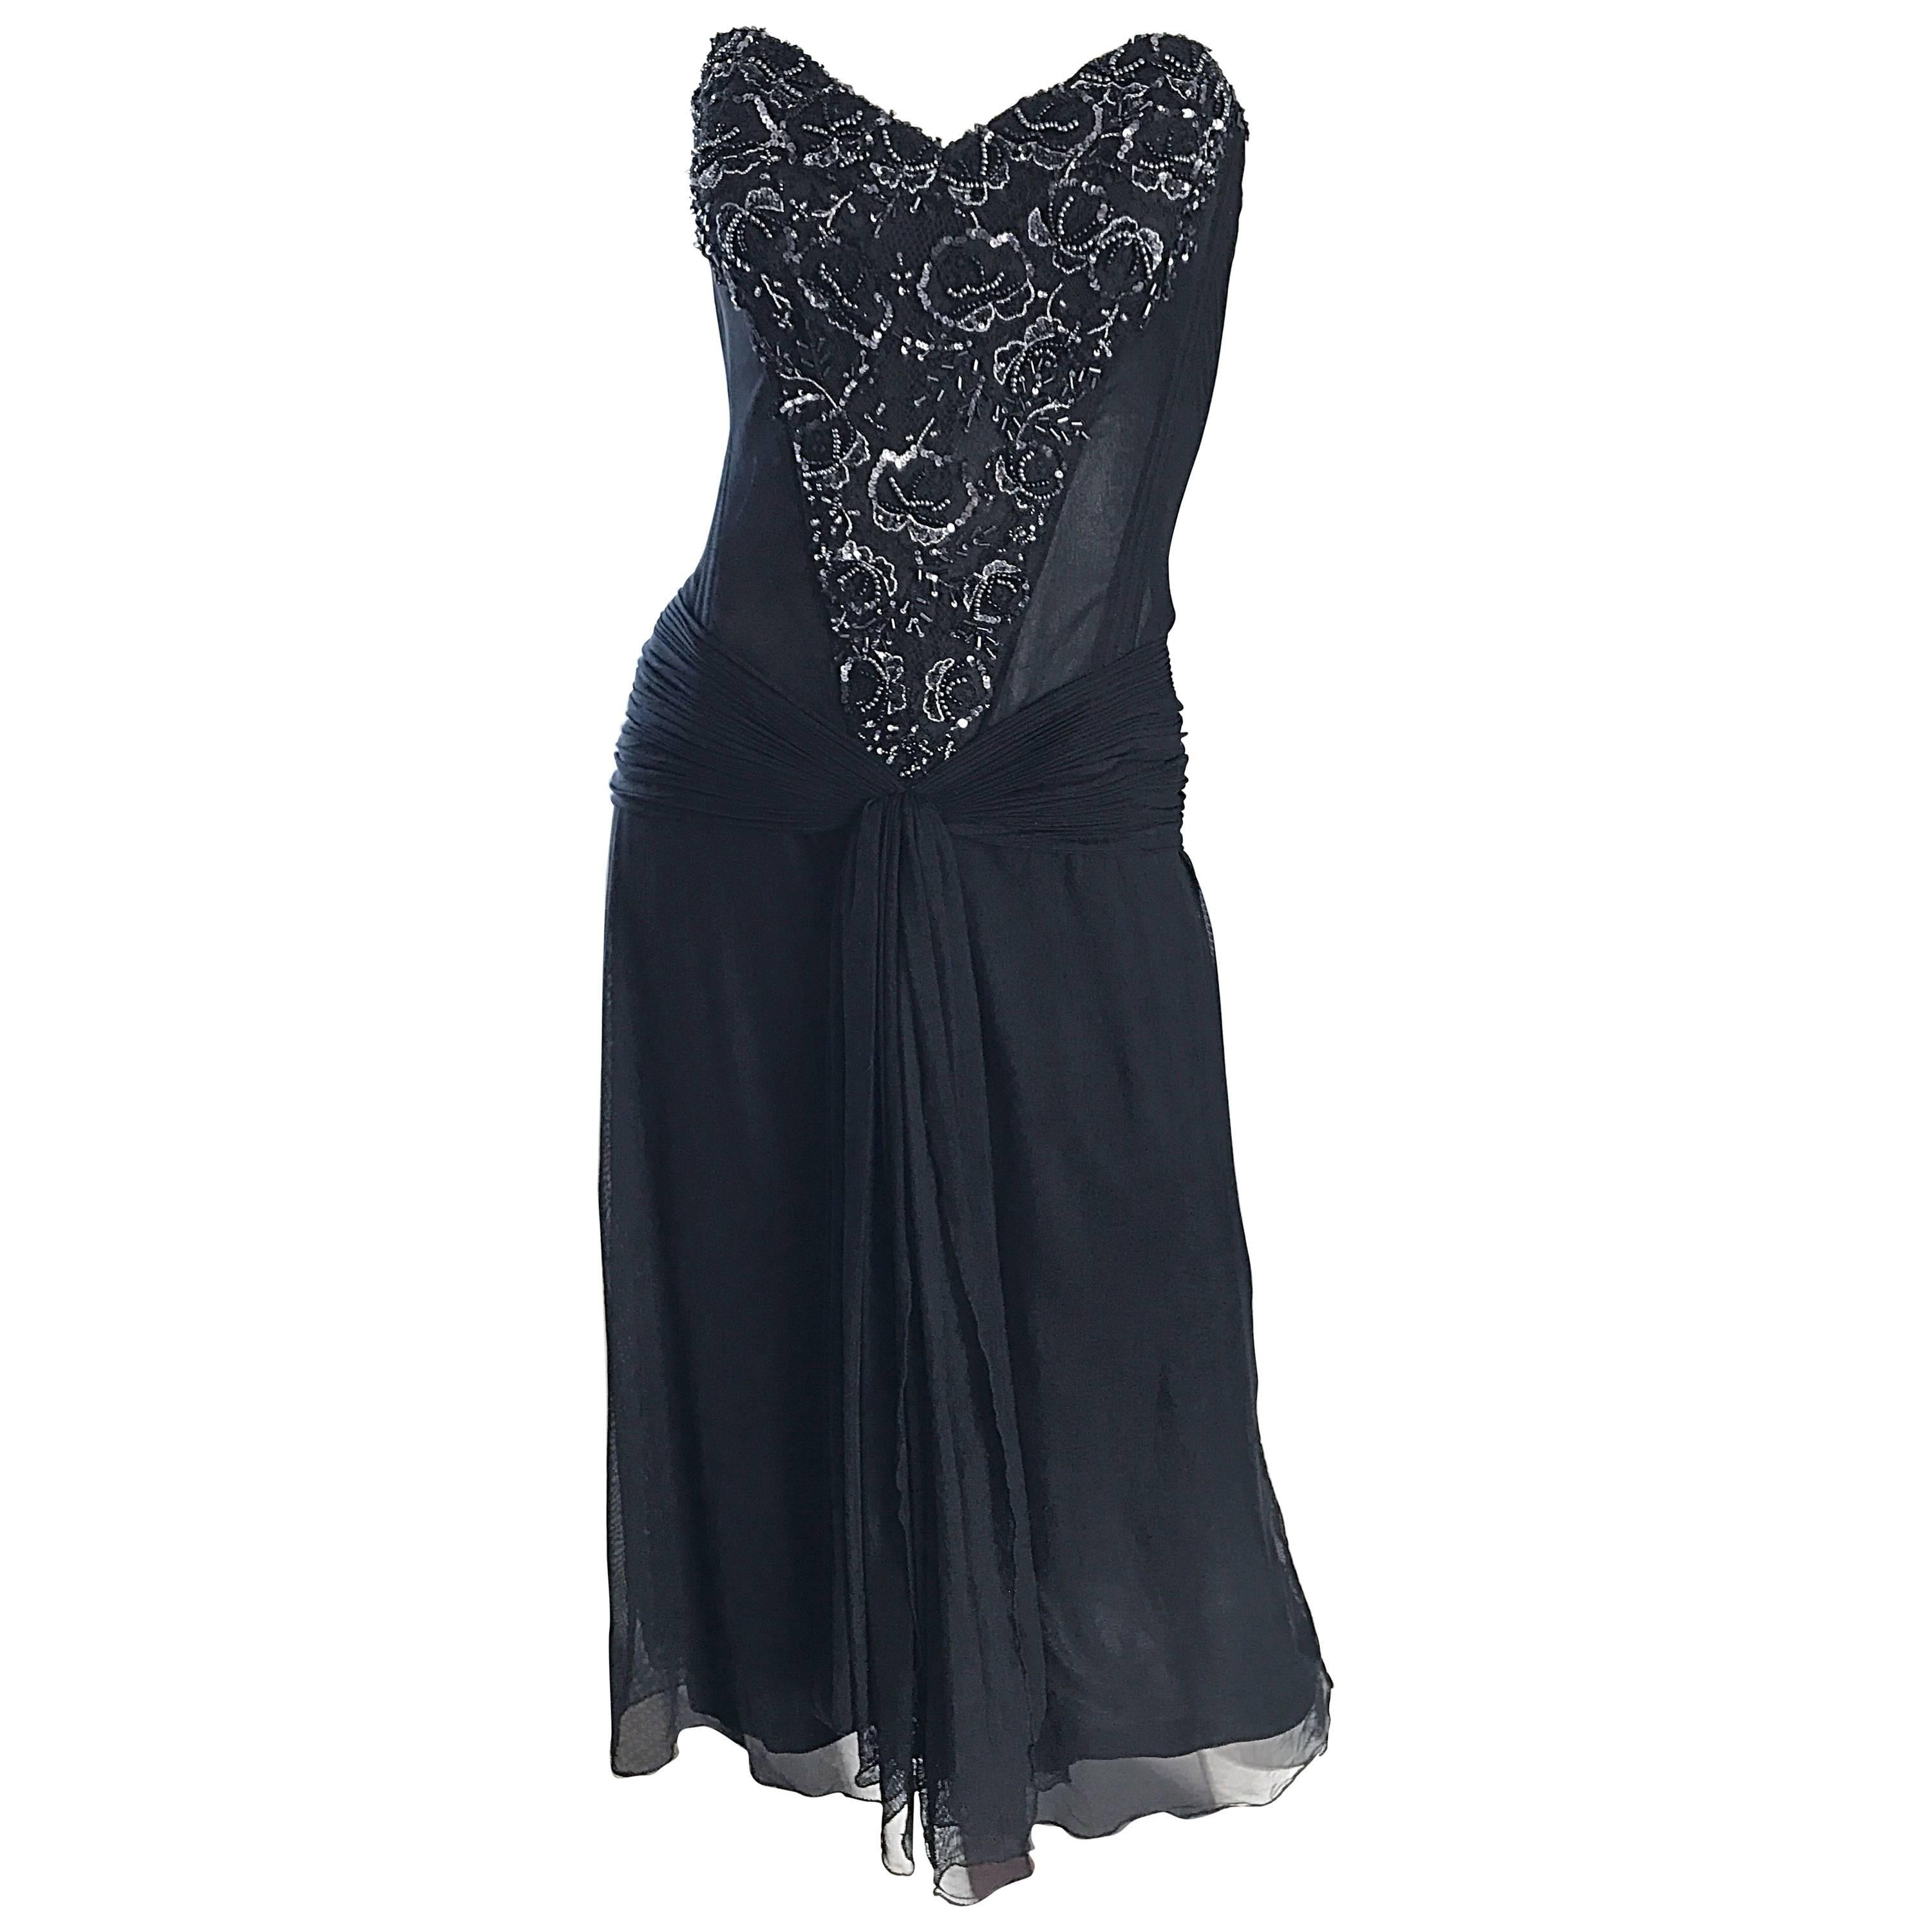 Vintage Vicky Tiel Couture Black Sequined and Beaded Strapless Flapper Dress